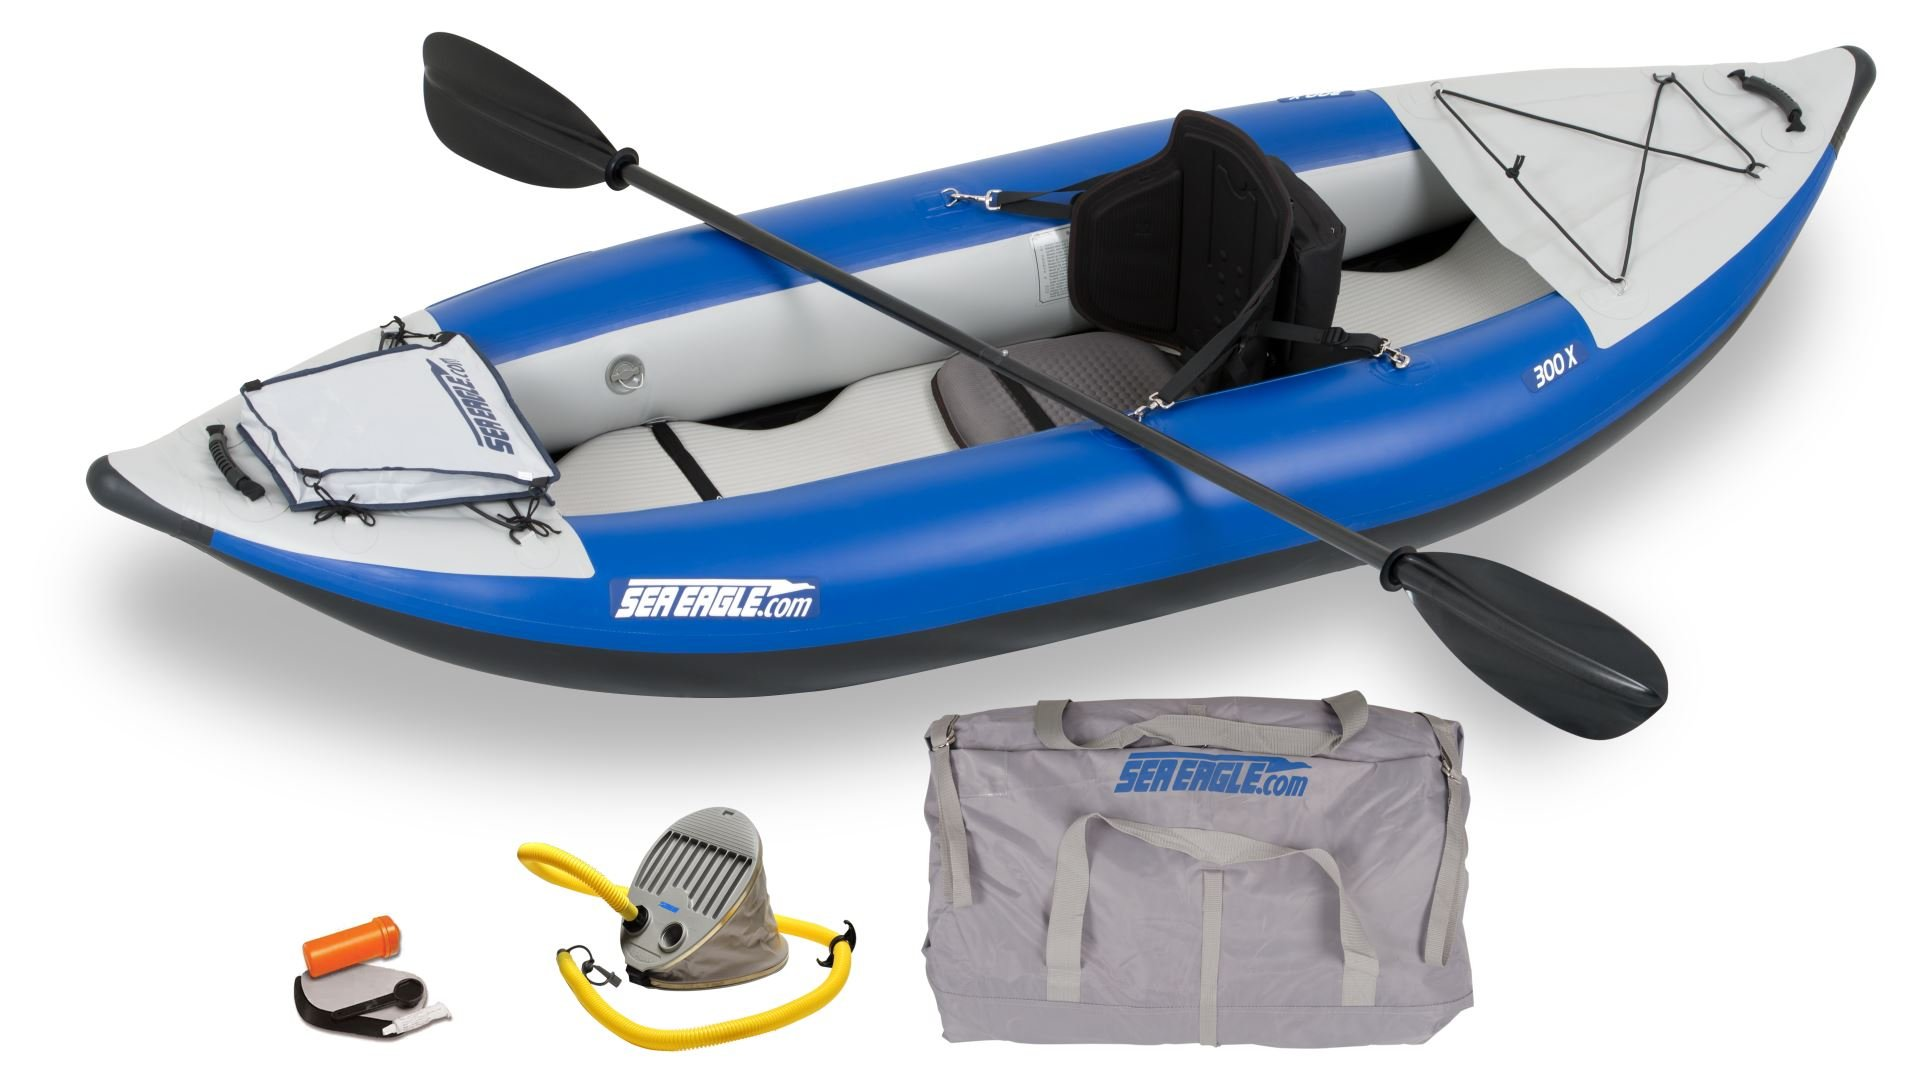 Sea Eagle 300XKPCT Explorer Pro Carbon Kayak with 16 Super-fast Drain Valves by Sea Eagle